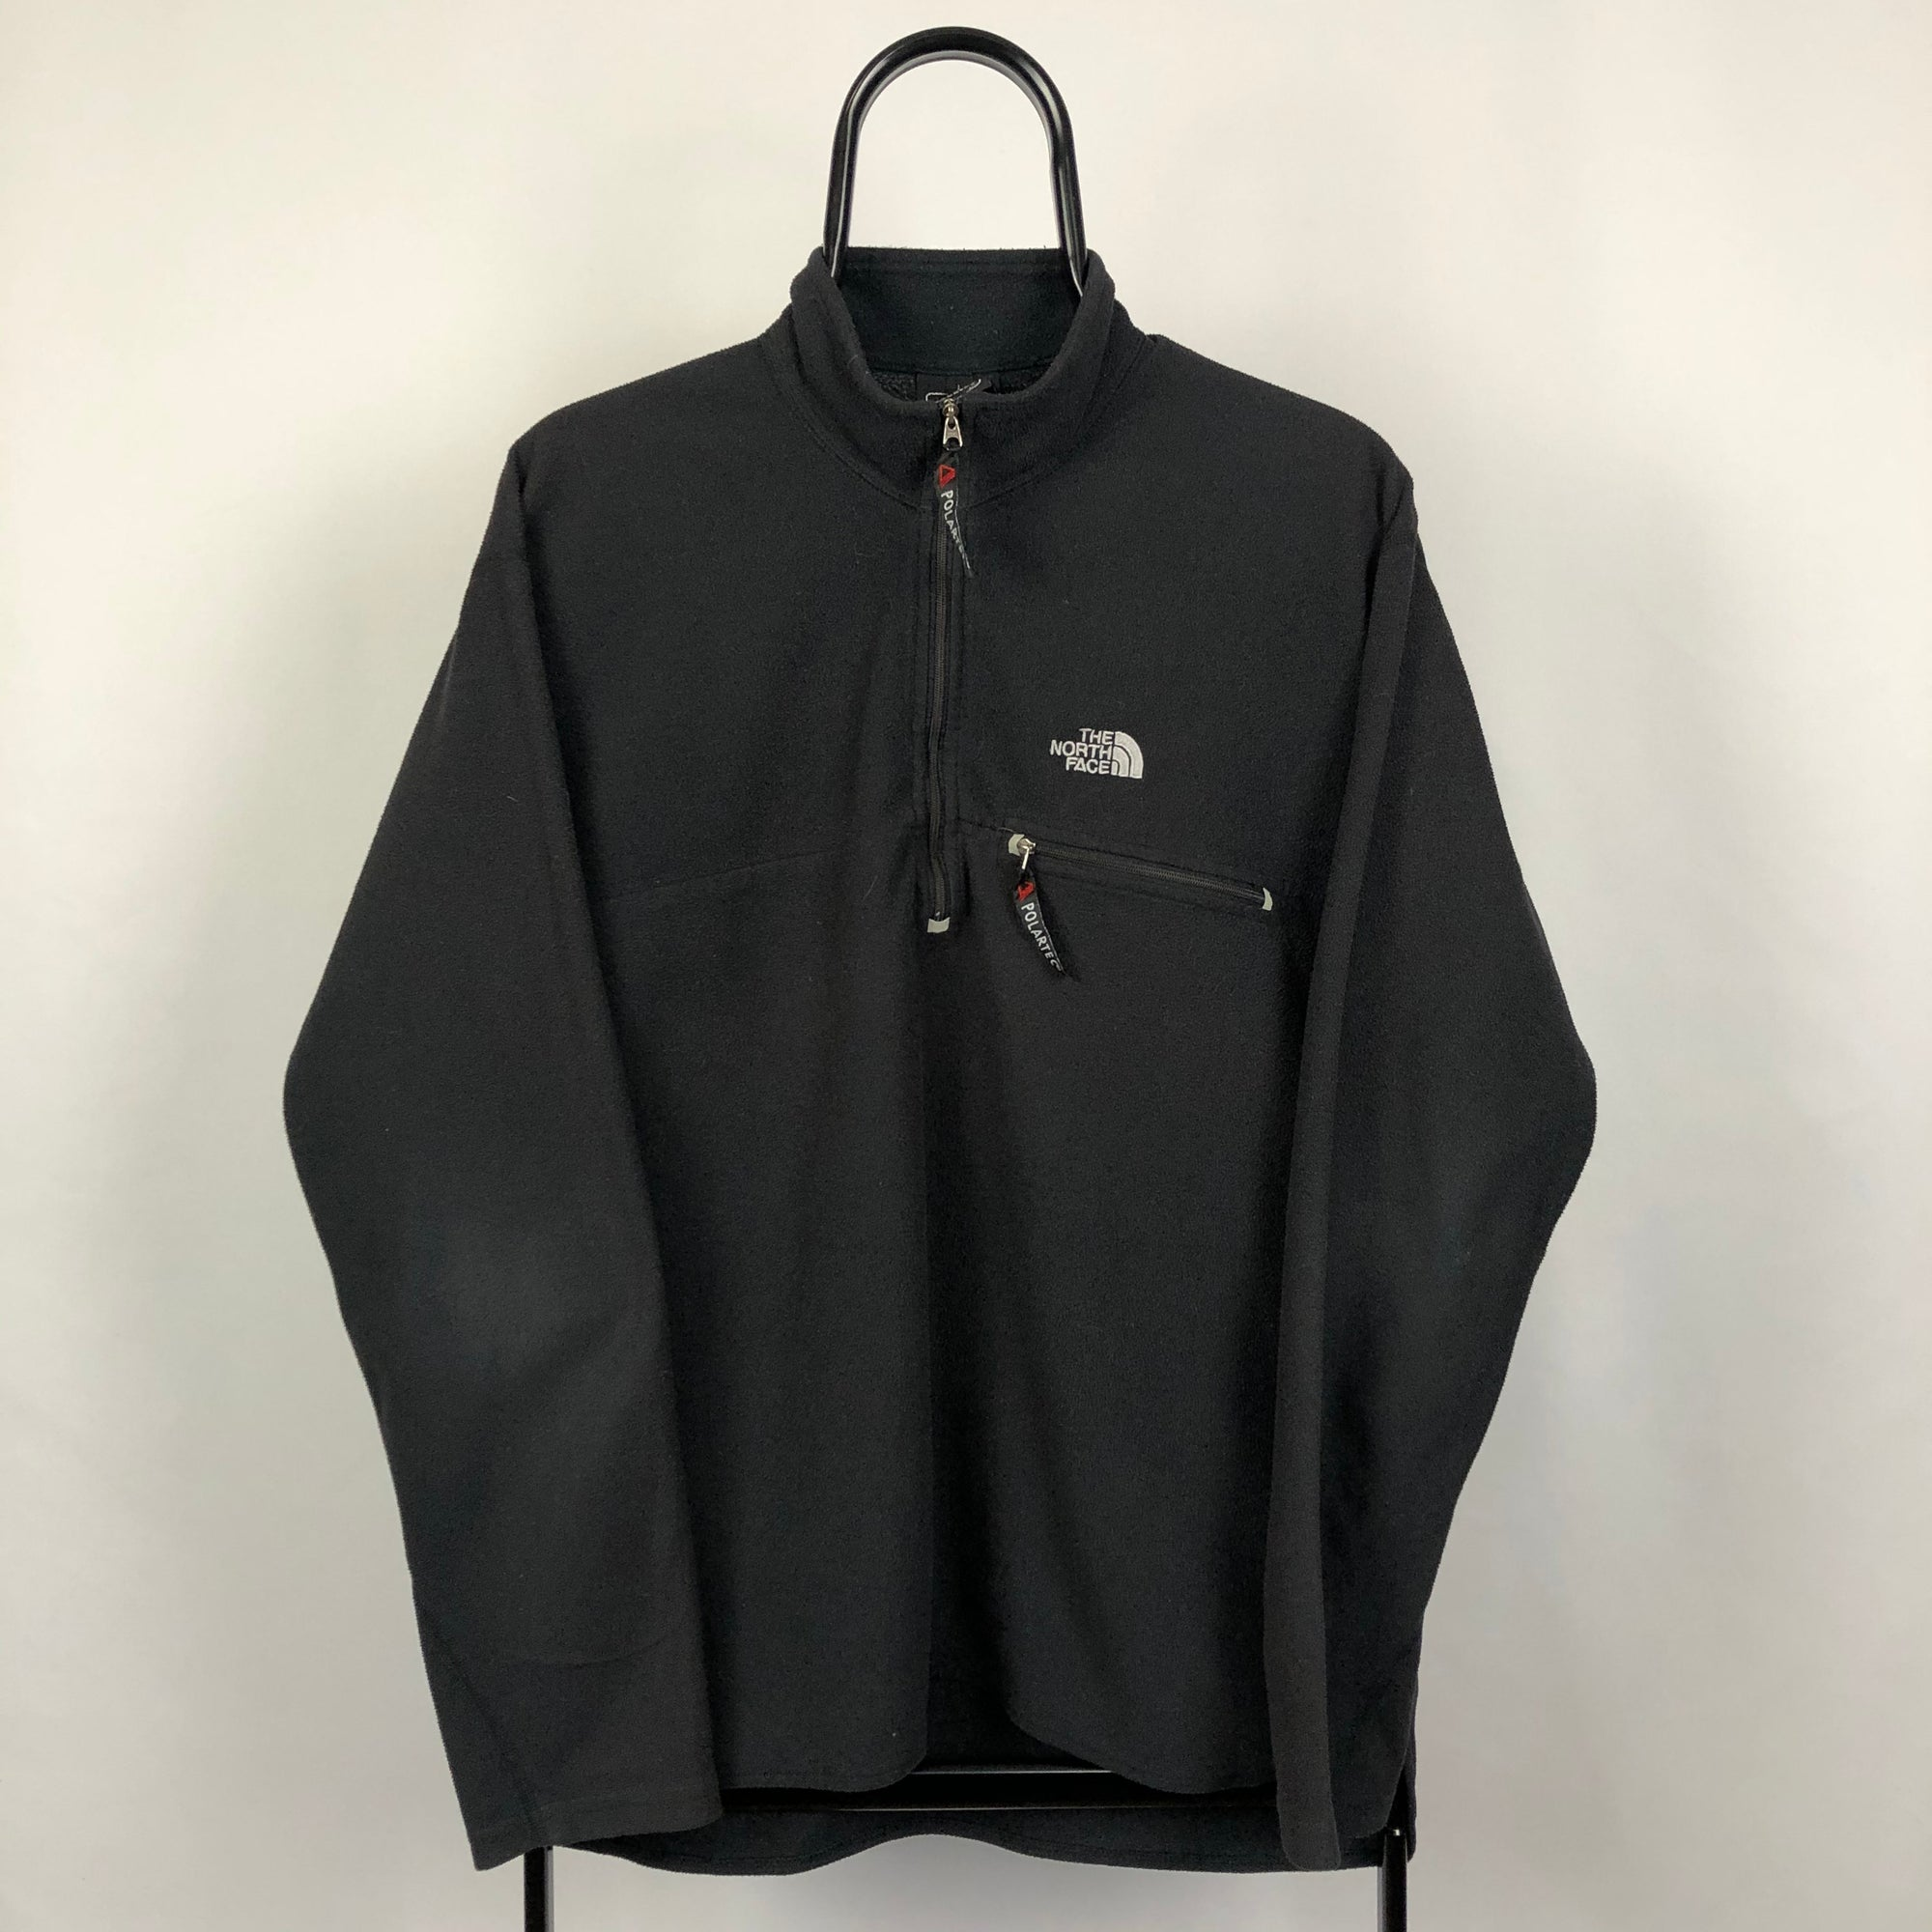 North Face Polartec Fleece in Black - Men's Large/Women's XL